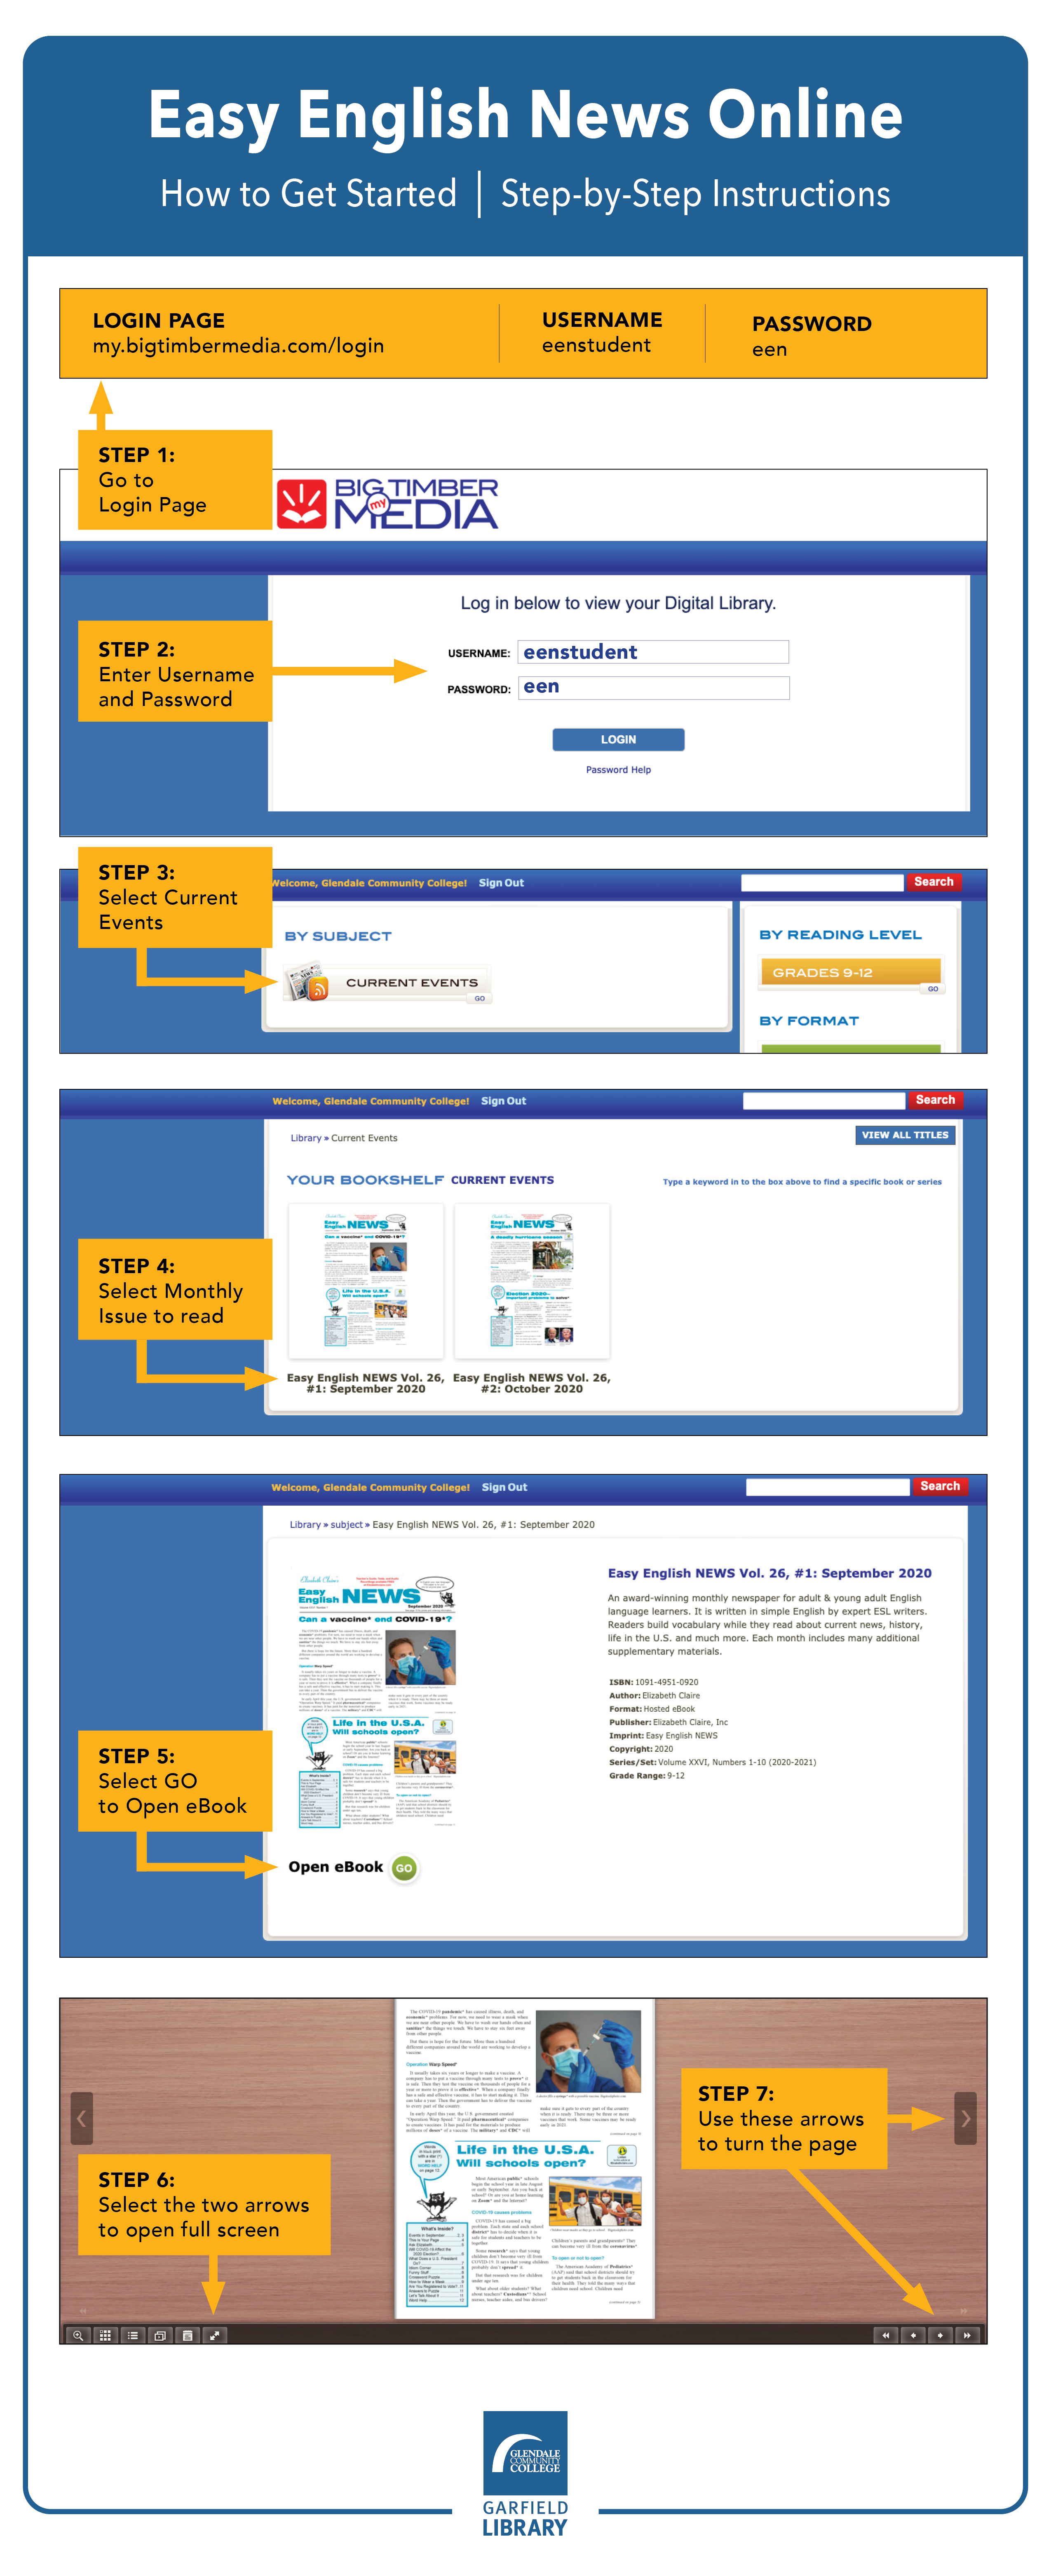 Easy English News Online Instructions